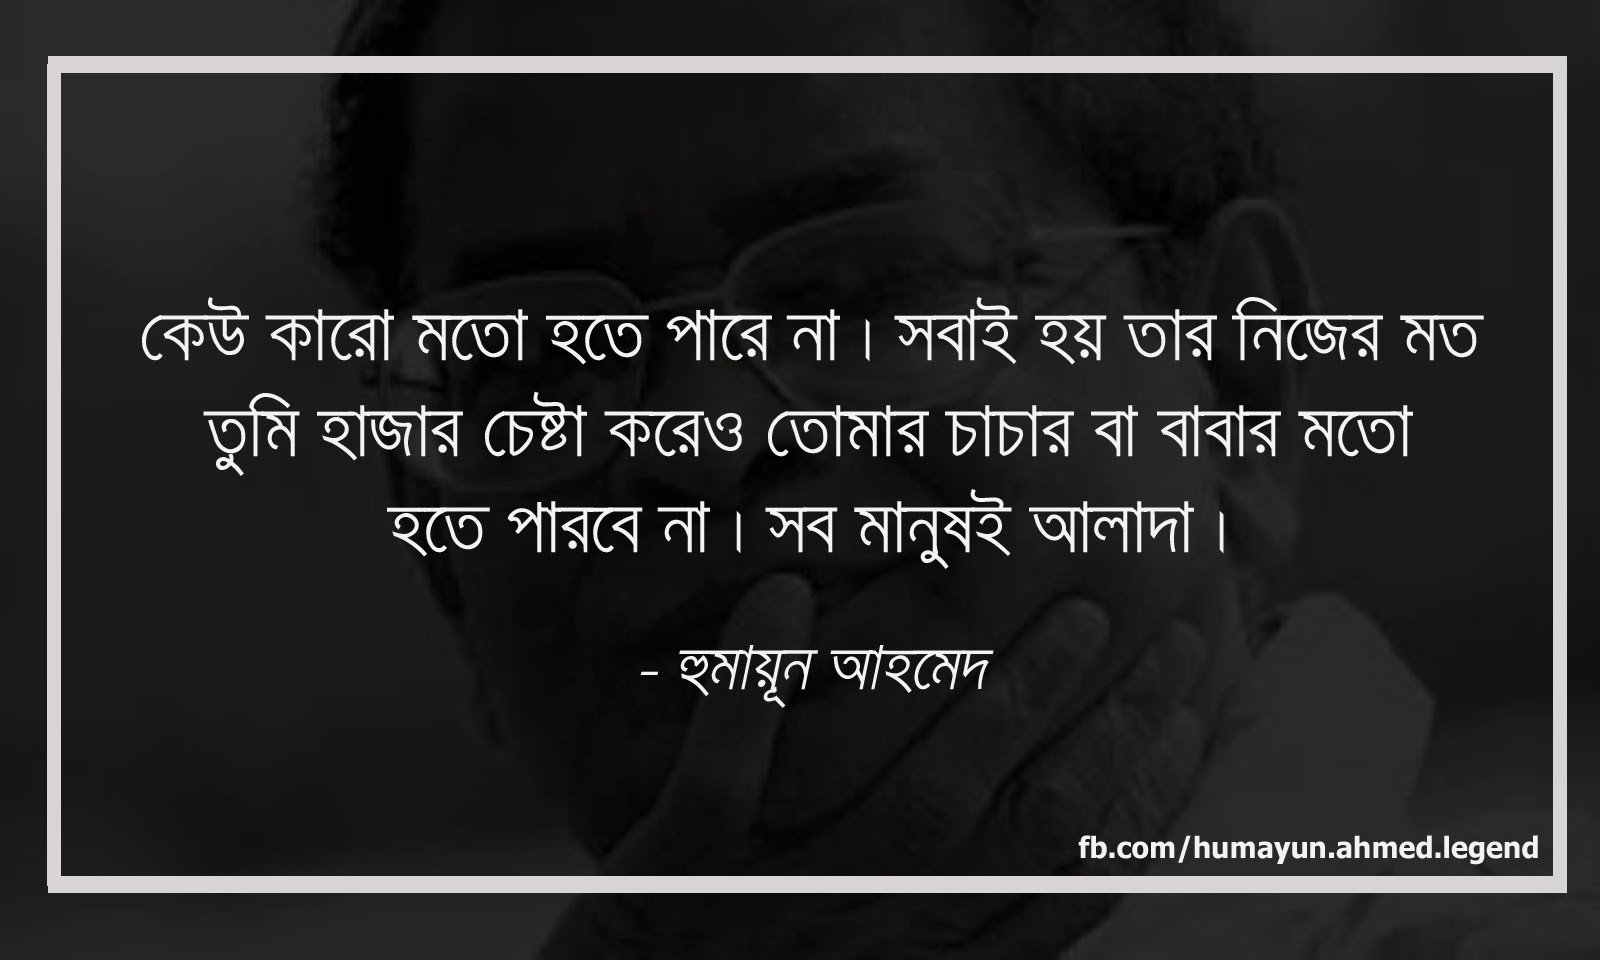 Real Life Quotes Of Humayun Ahmed